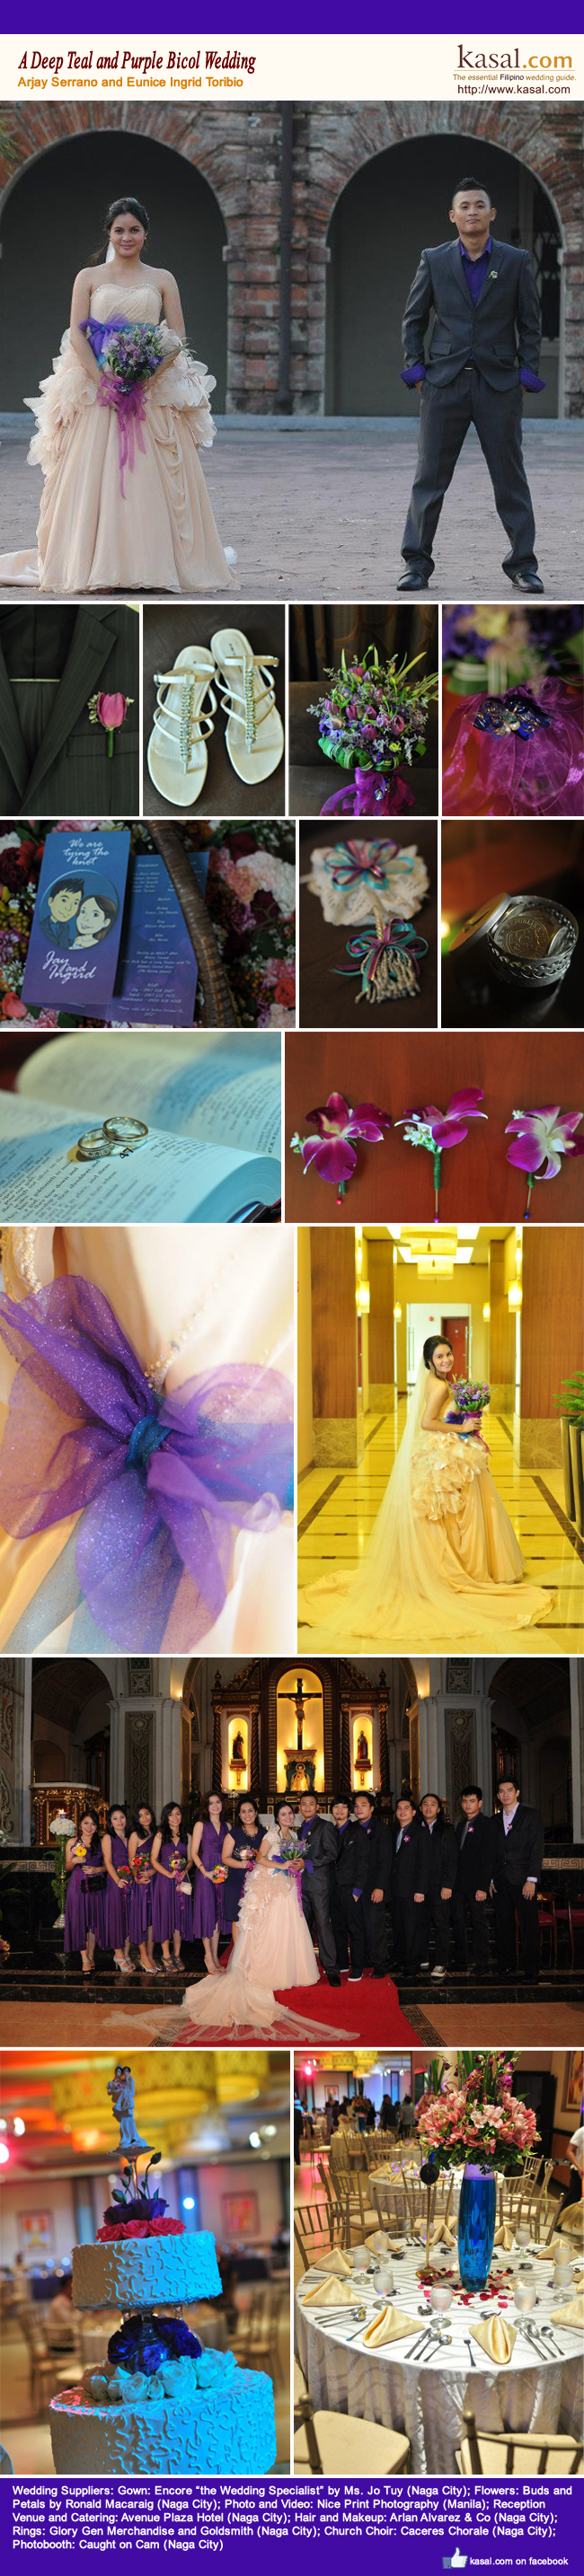 A deep teal and purple bicol wedding kasal the essential purple accent in the brides bridal gown boutonnieres for the groom and the groomsmen were the same color as the purple flowers in the brides bouquet stopboris Image collections